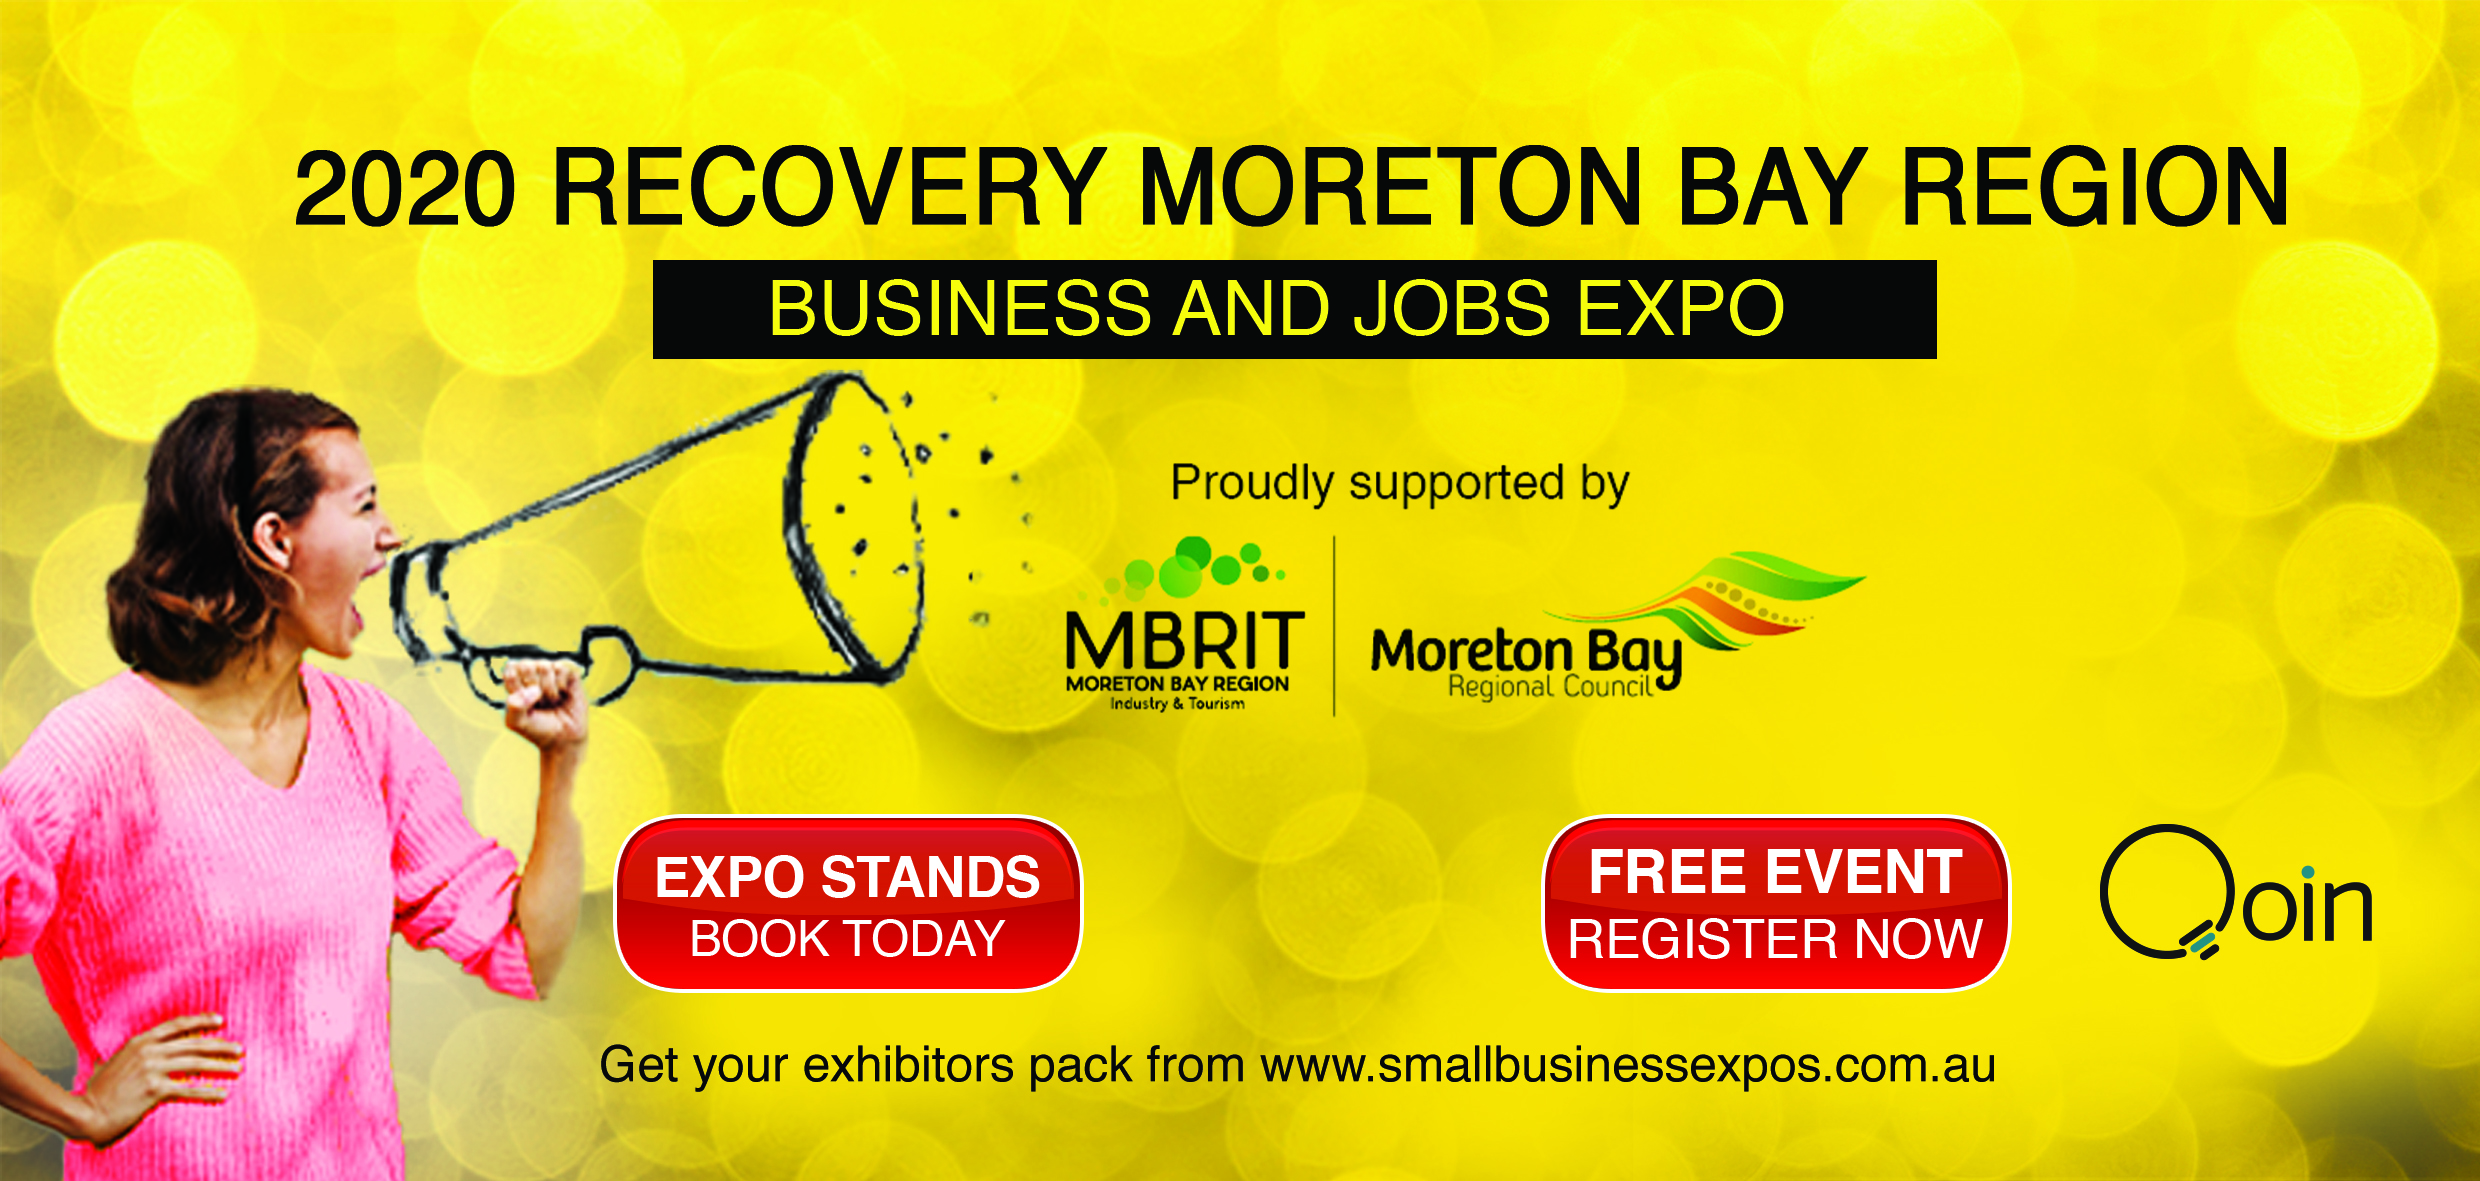 2020 Recovery Moreton Bay - Business and Jobs Expo